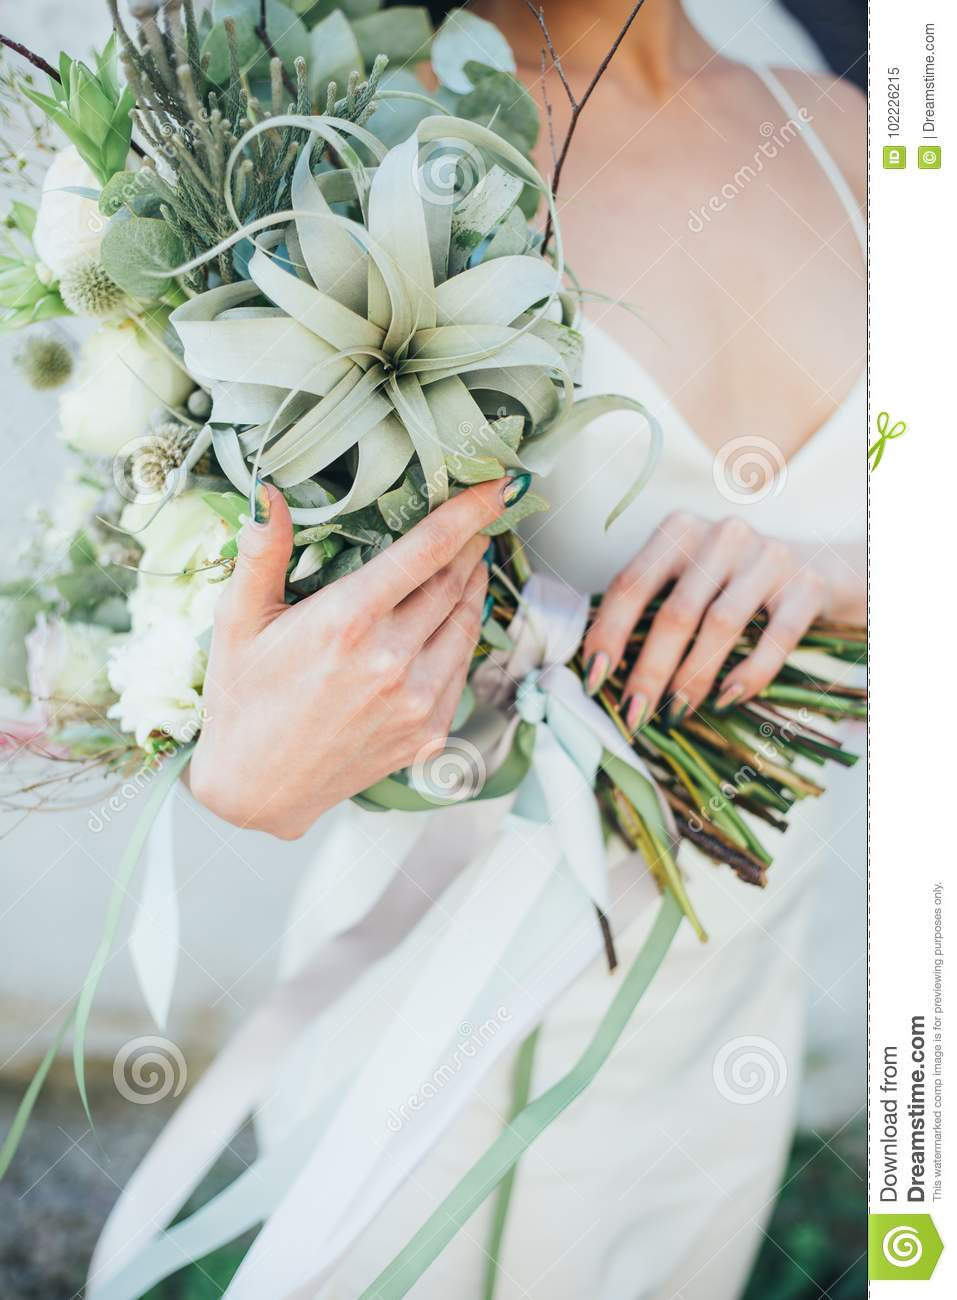 Bouquet with fresh flowers in hand stock image image of birthday download bouquet with fresh flowers in hand stock image image of birthday finger izmirmasajfo